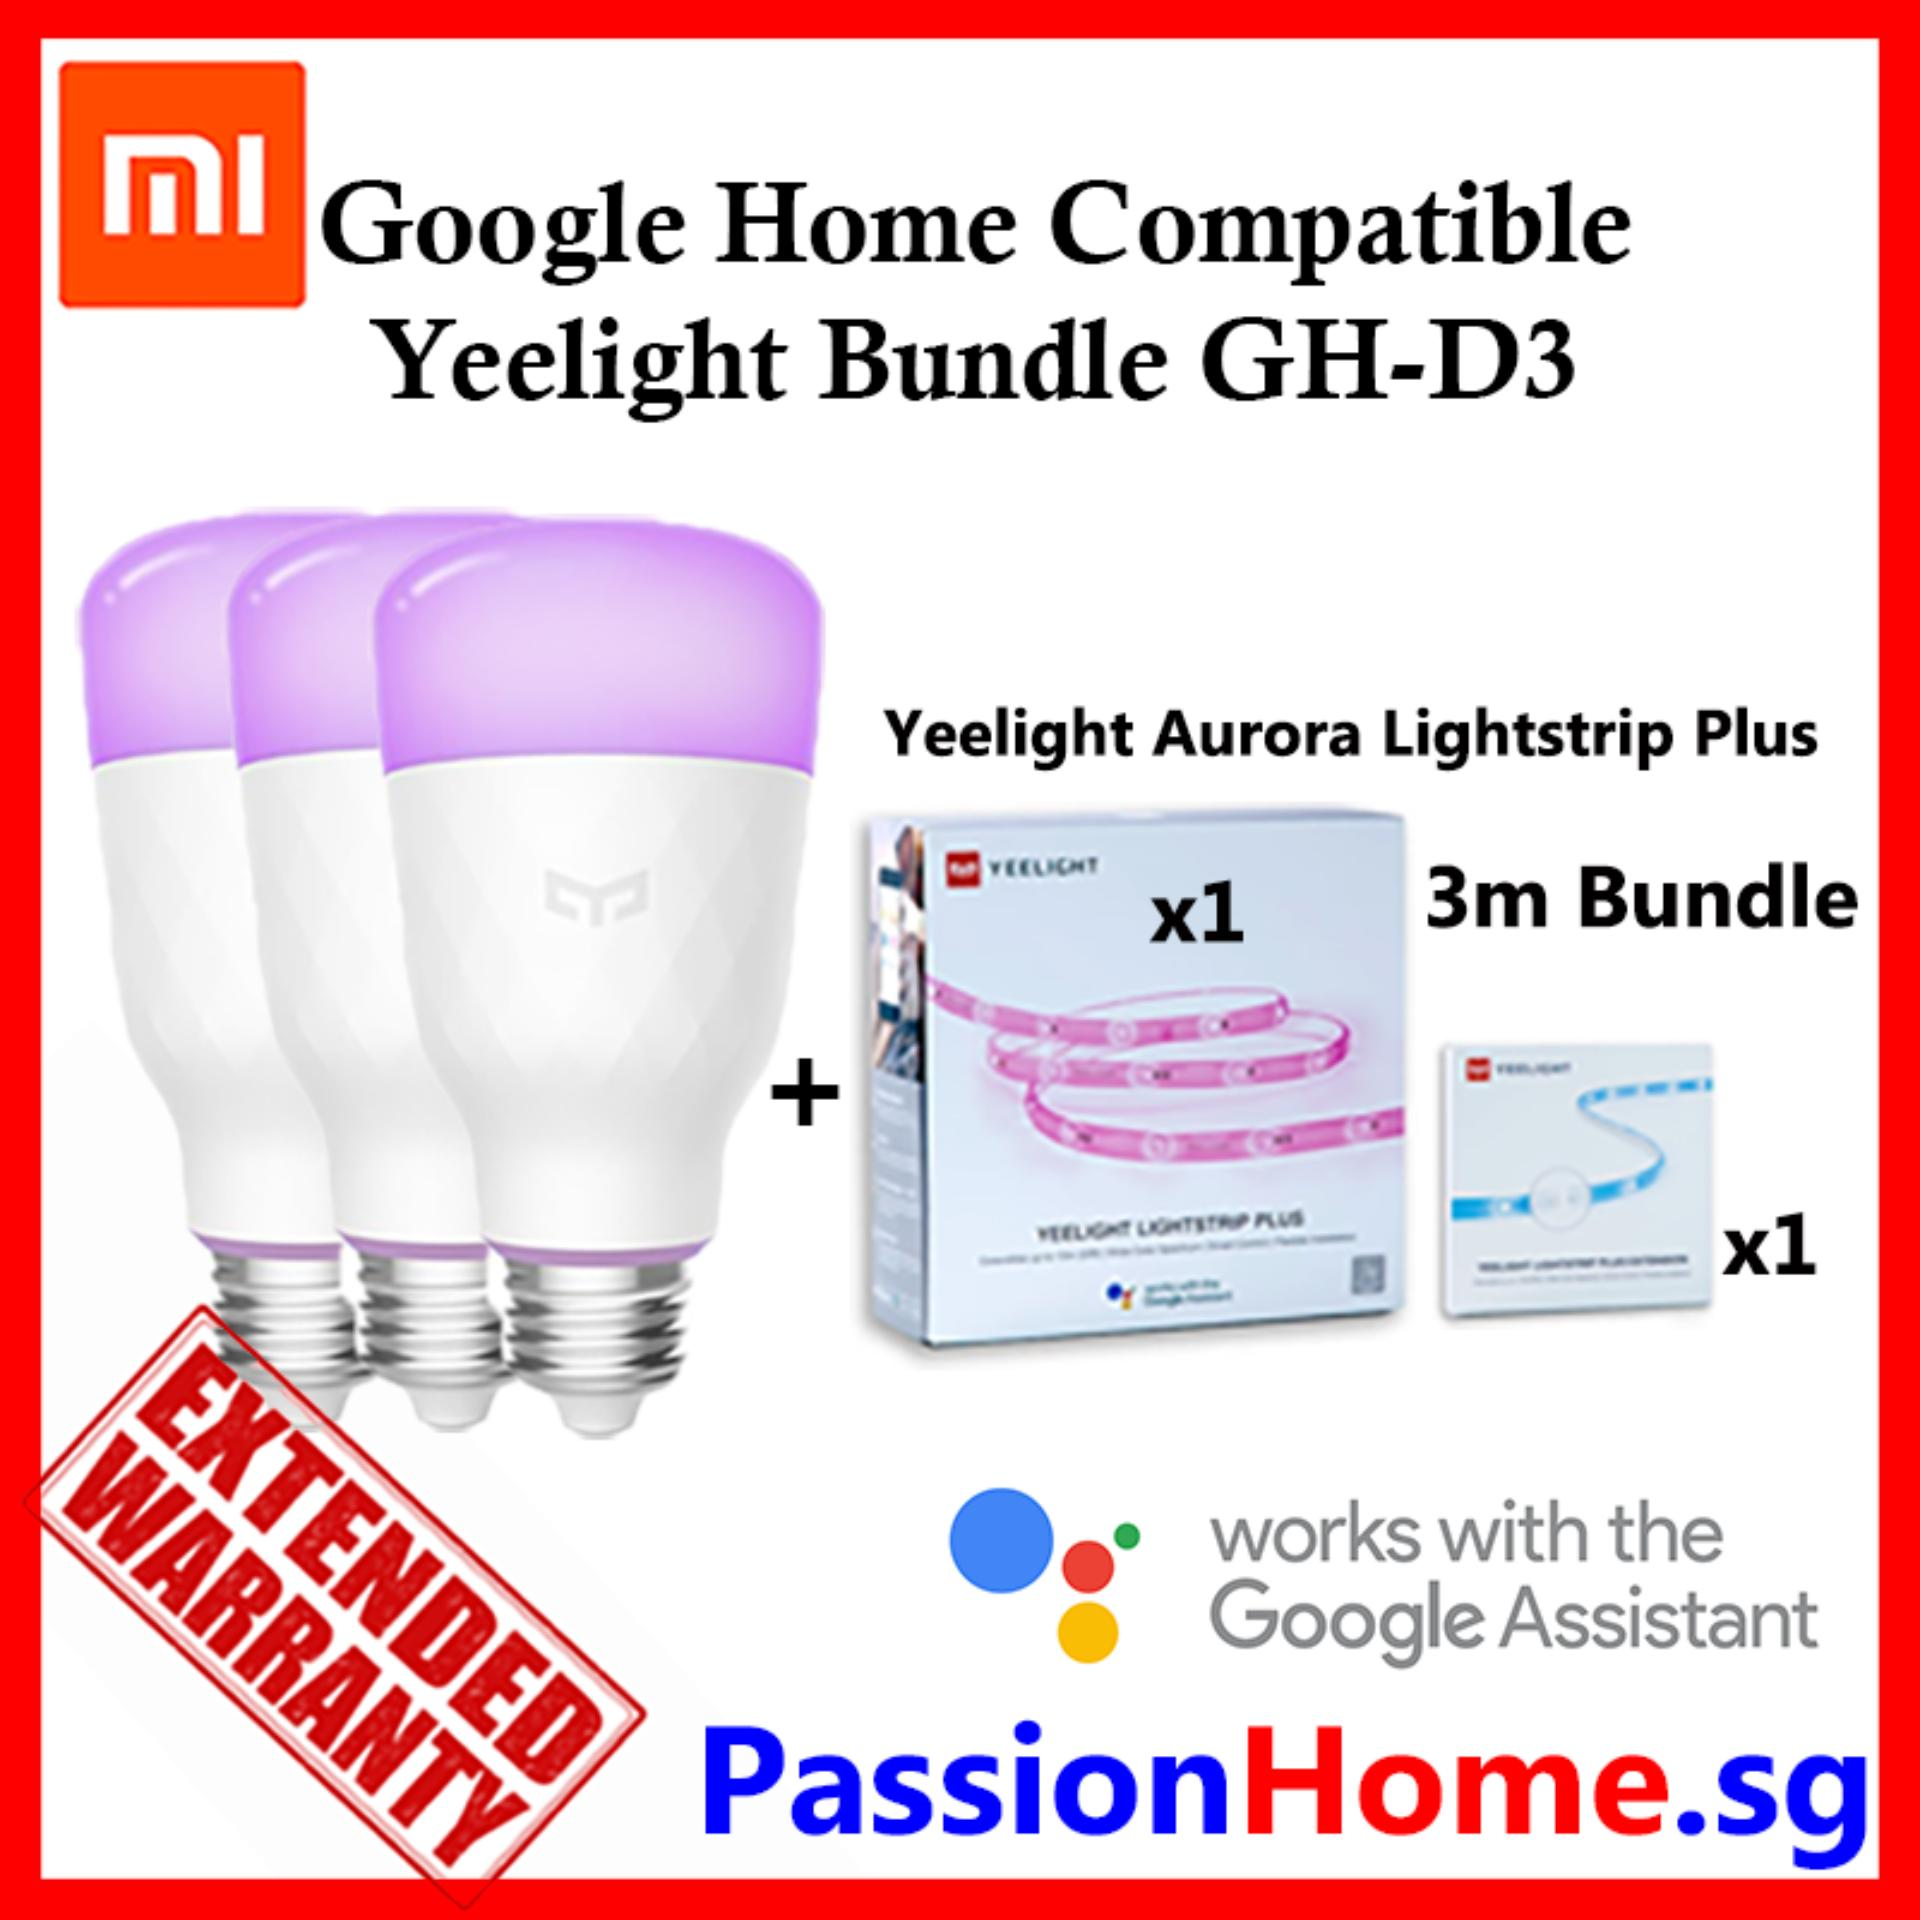 Google Home Compatible Yeelight Bundle GH-D3 Singapore